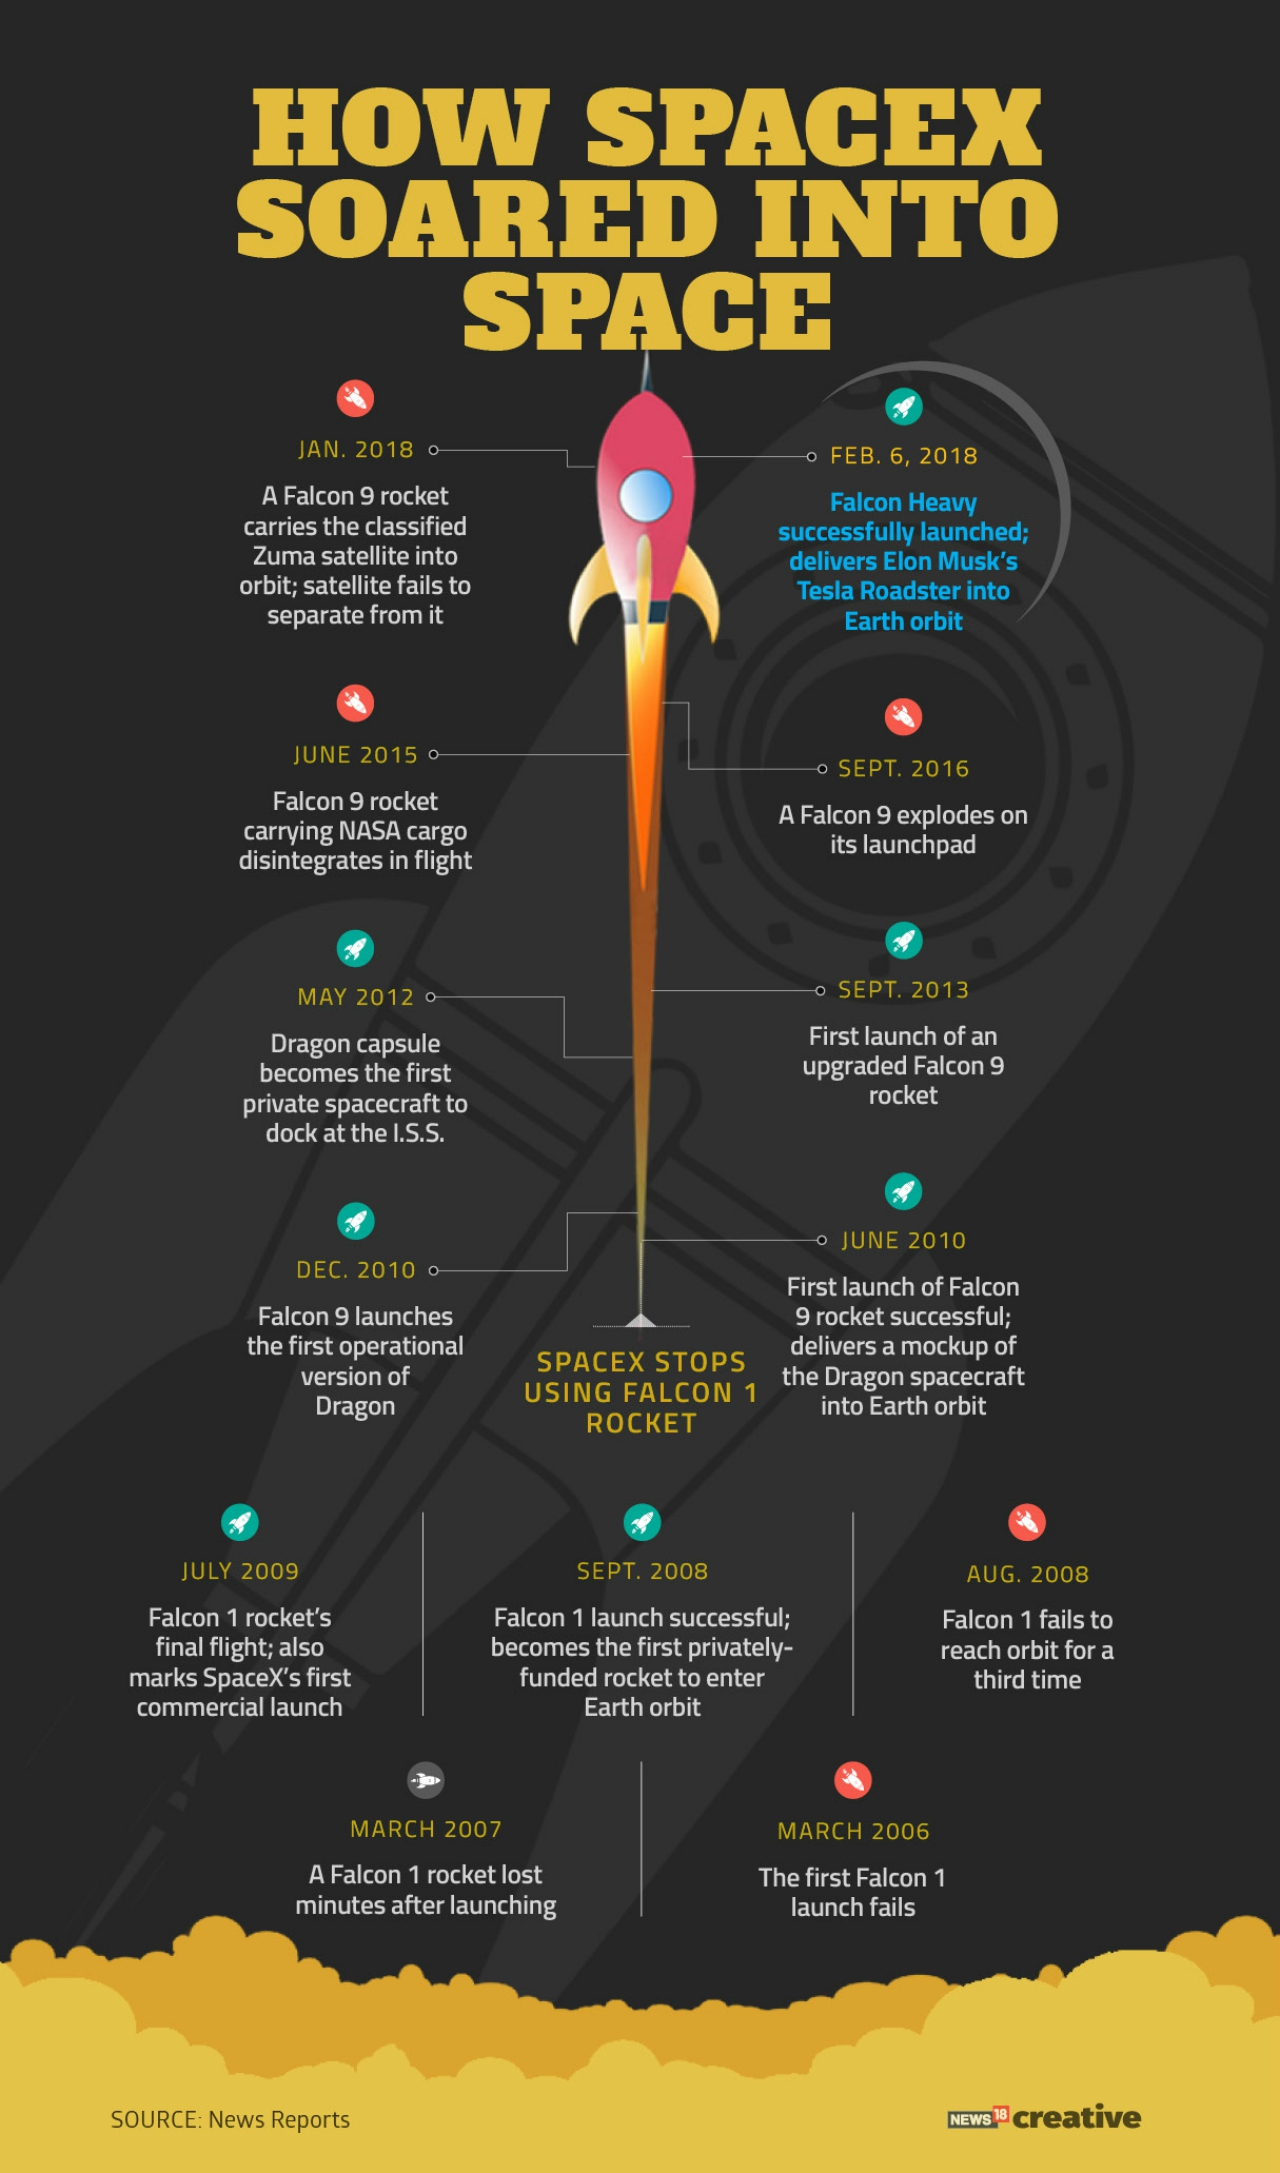 A timeline of spaceX